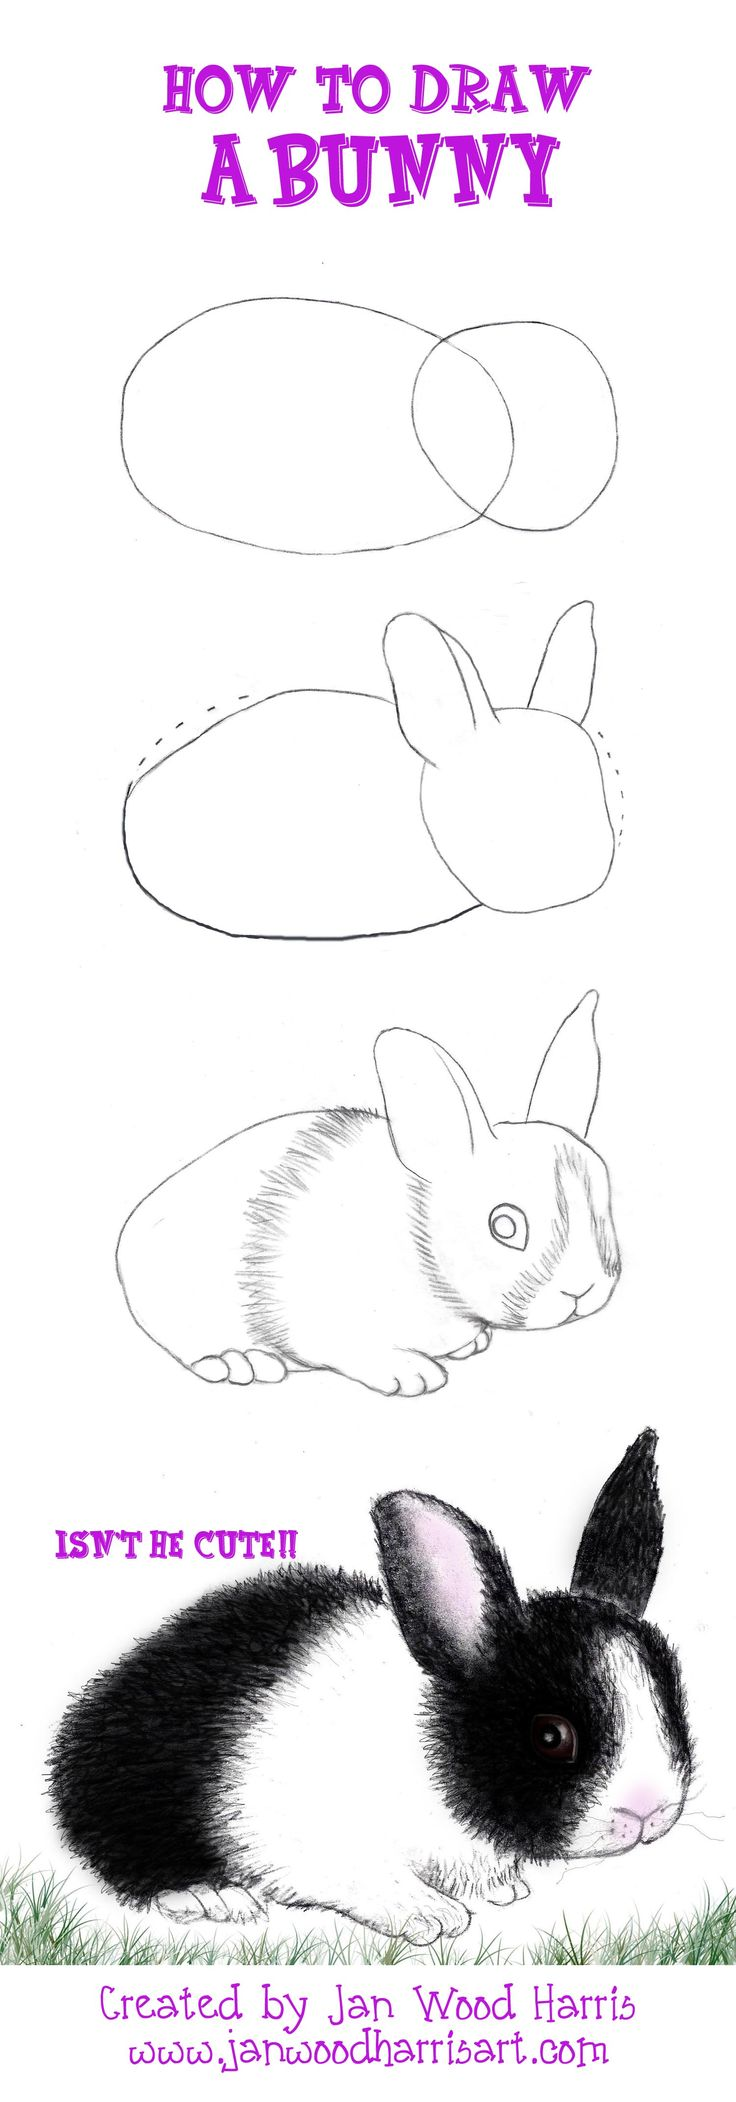 Drawn music bunny Bunny tutorial 25+ How to